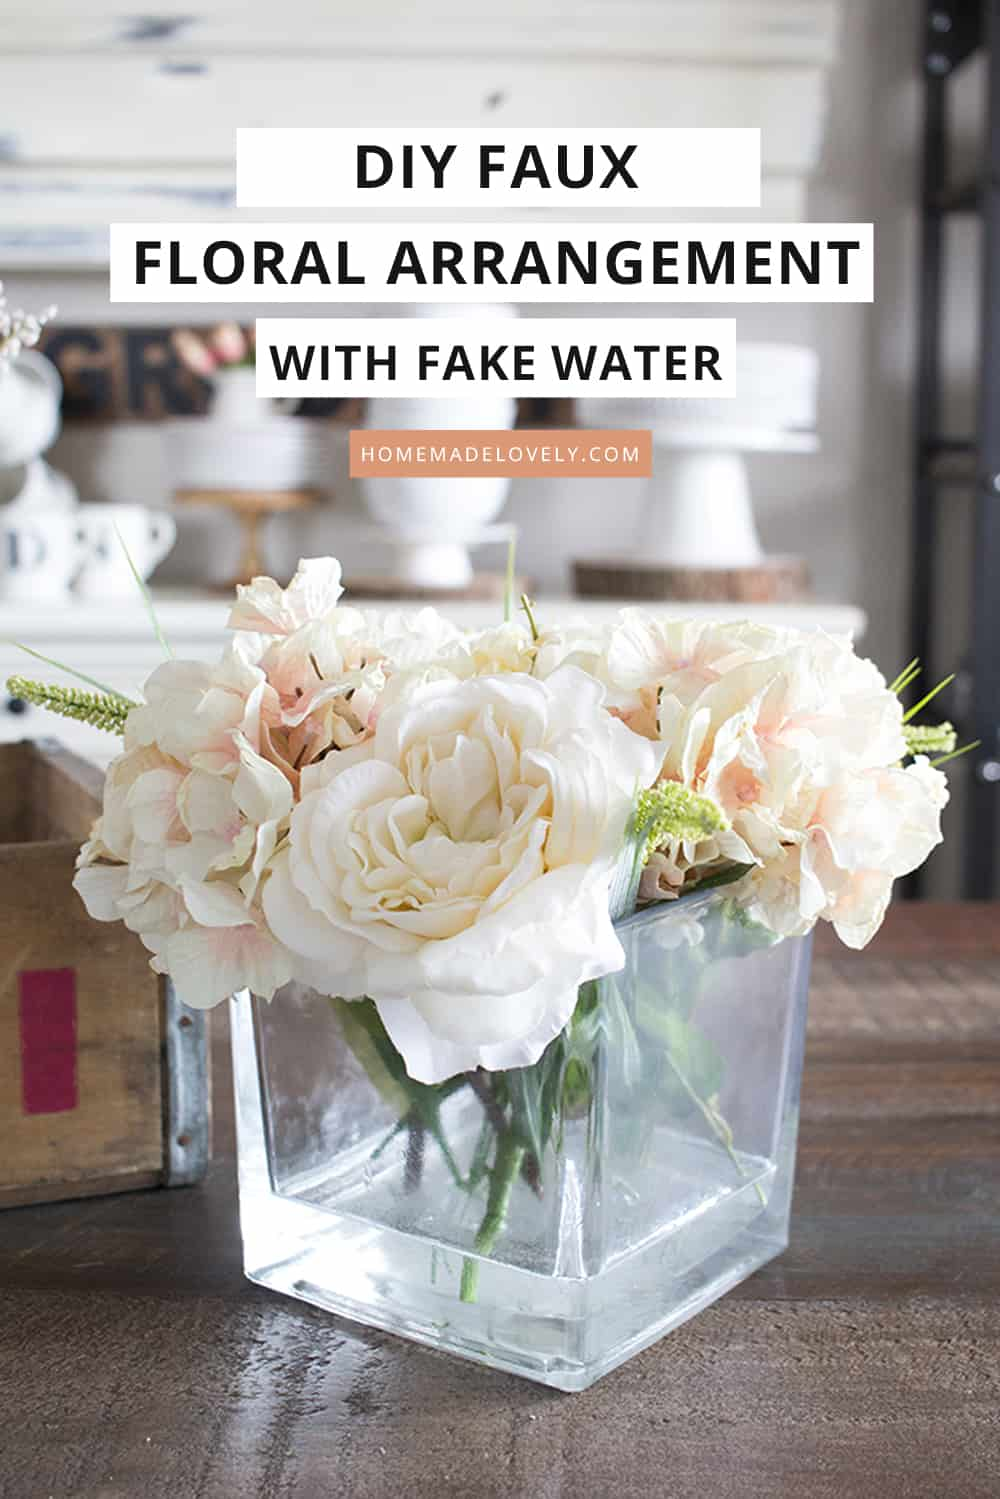 diy faux floral arrangement with fake water with text overlay